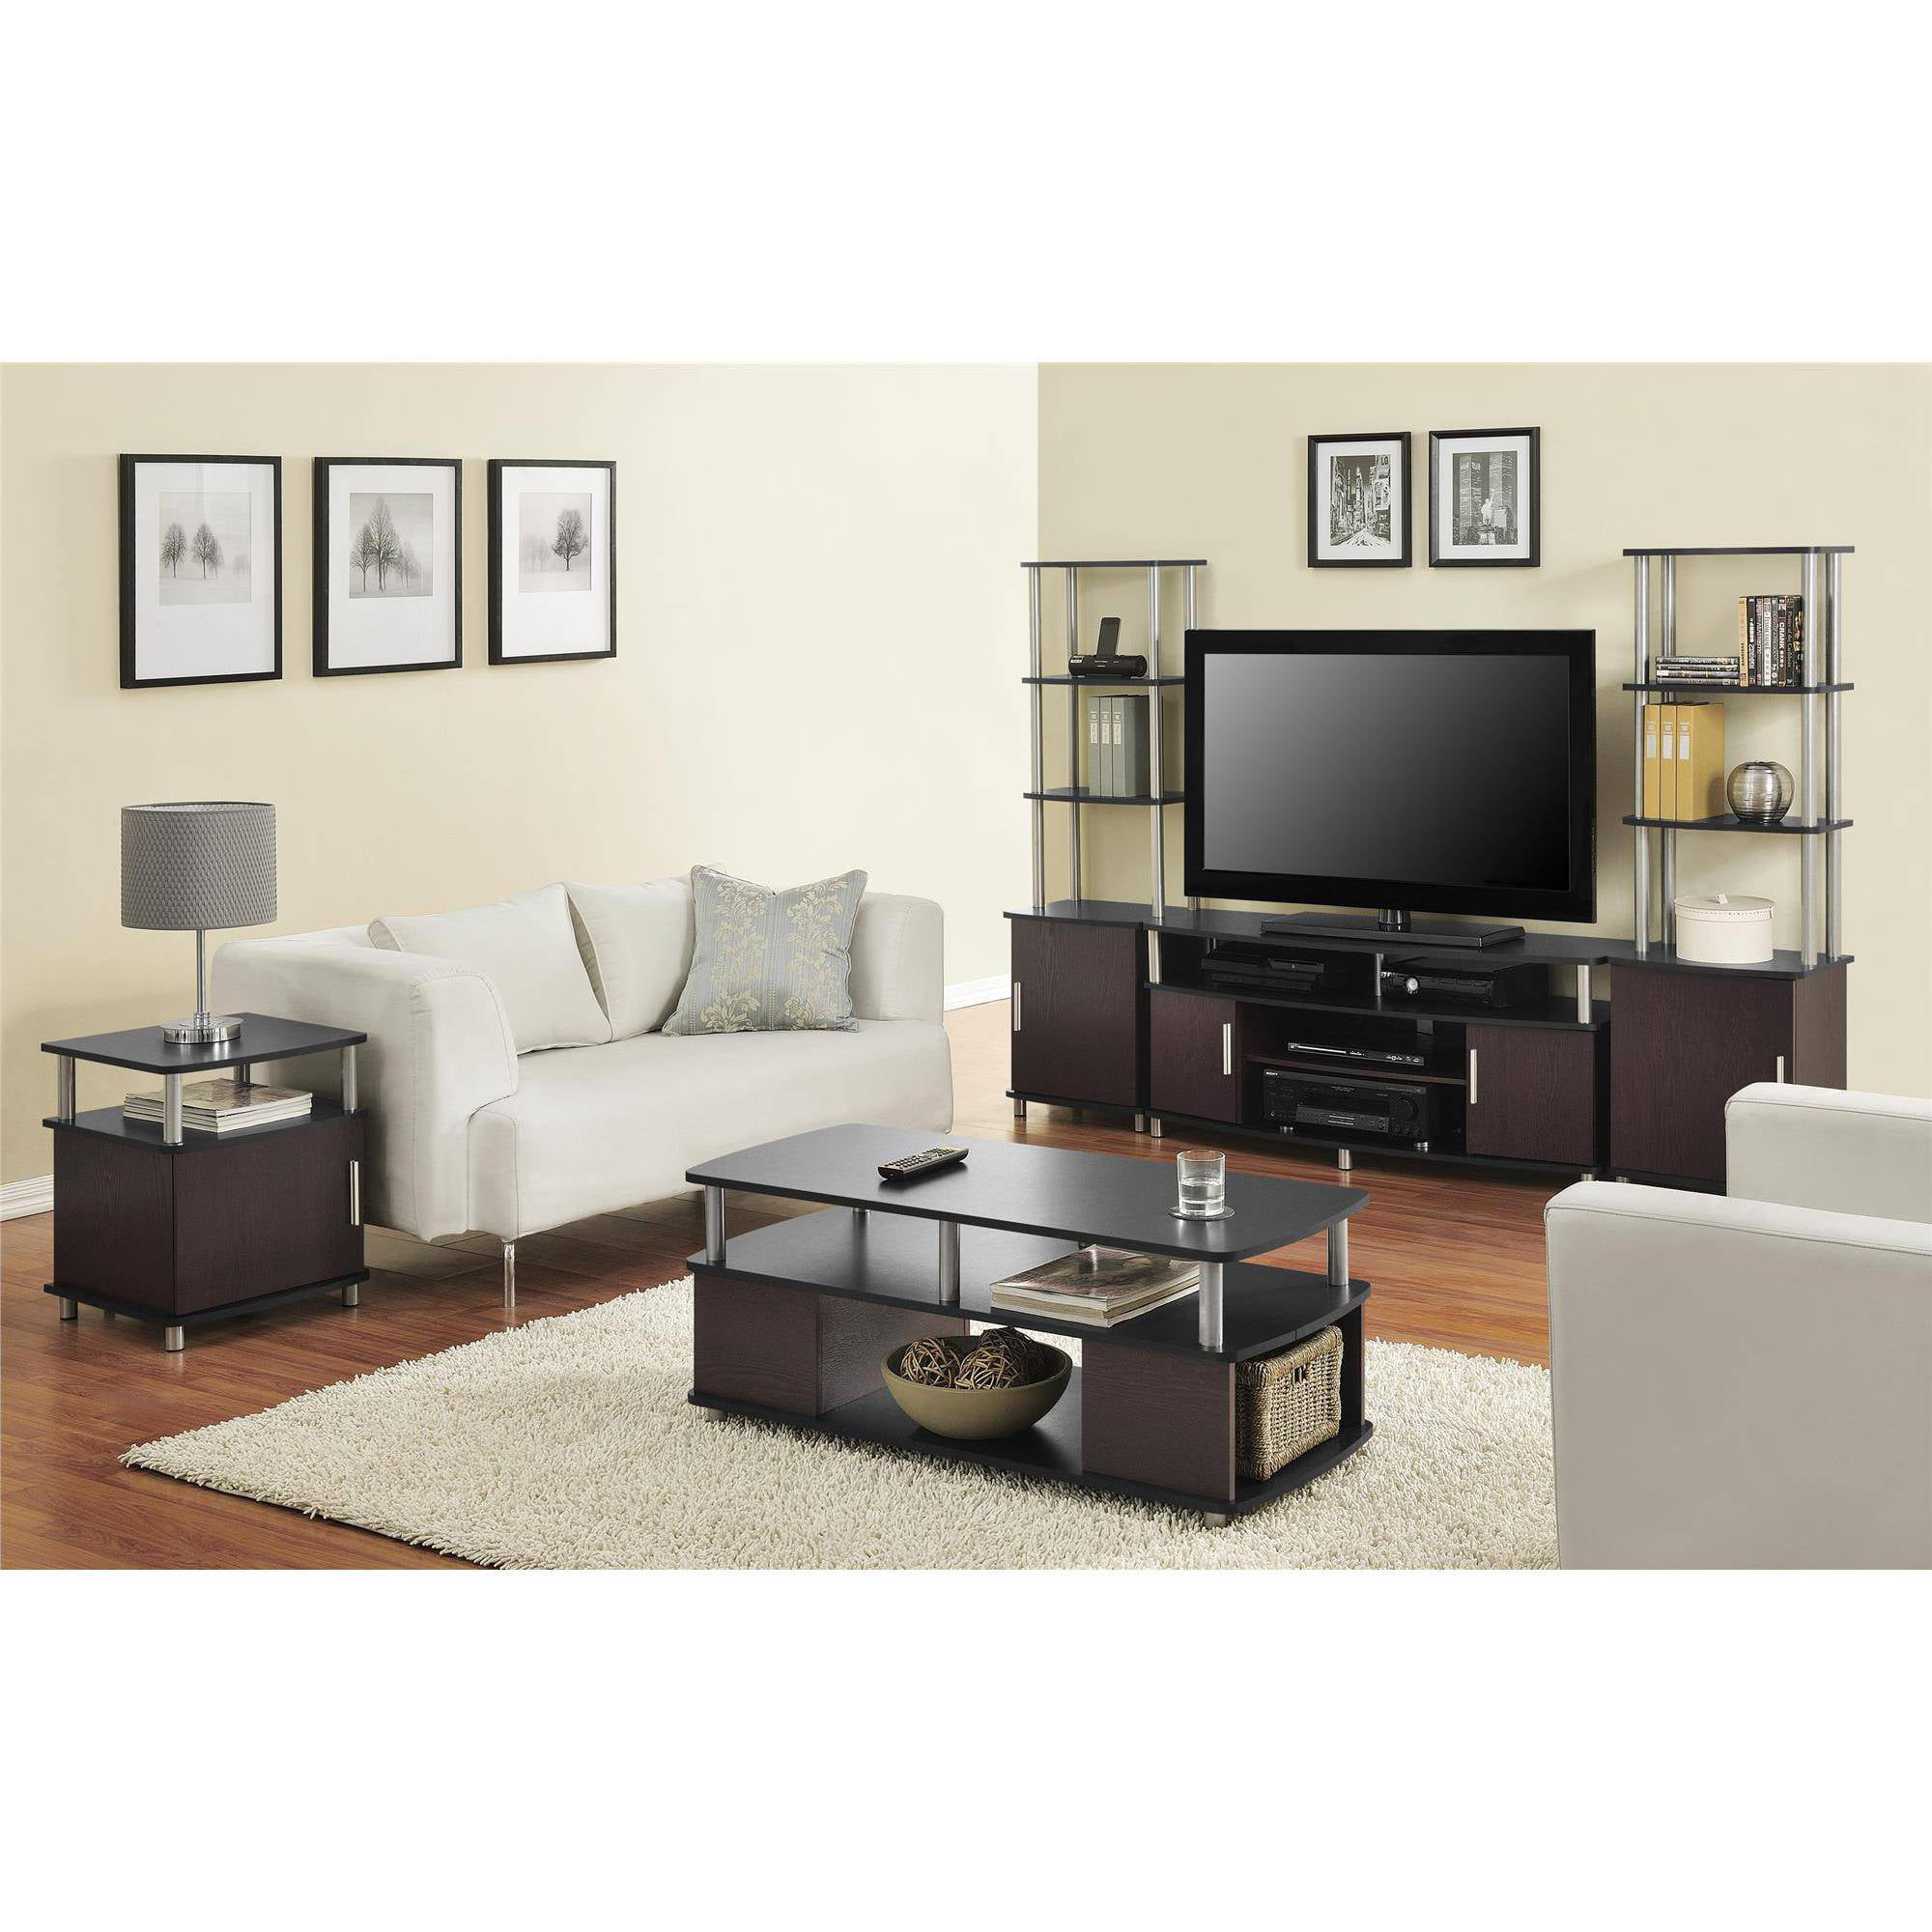 Carson 3 Piece Living Room Set Multiple Finishes Walmart